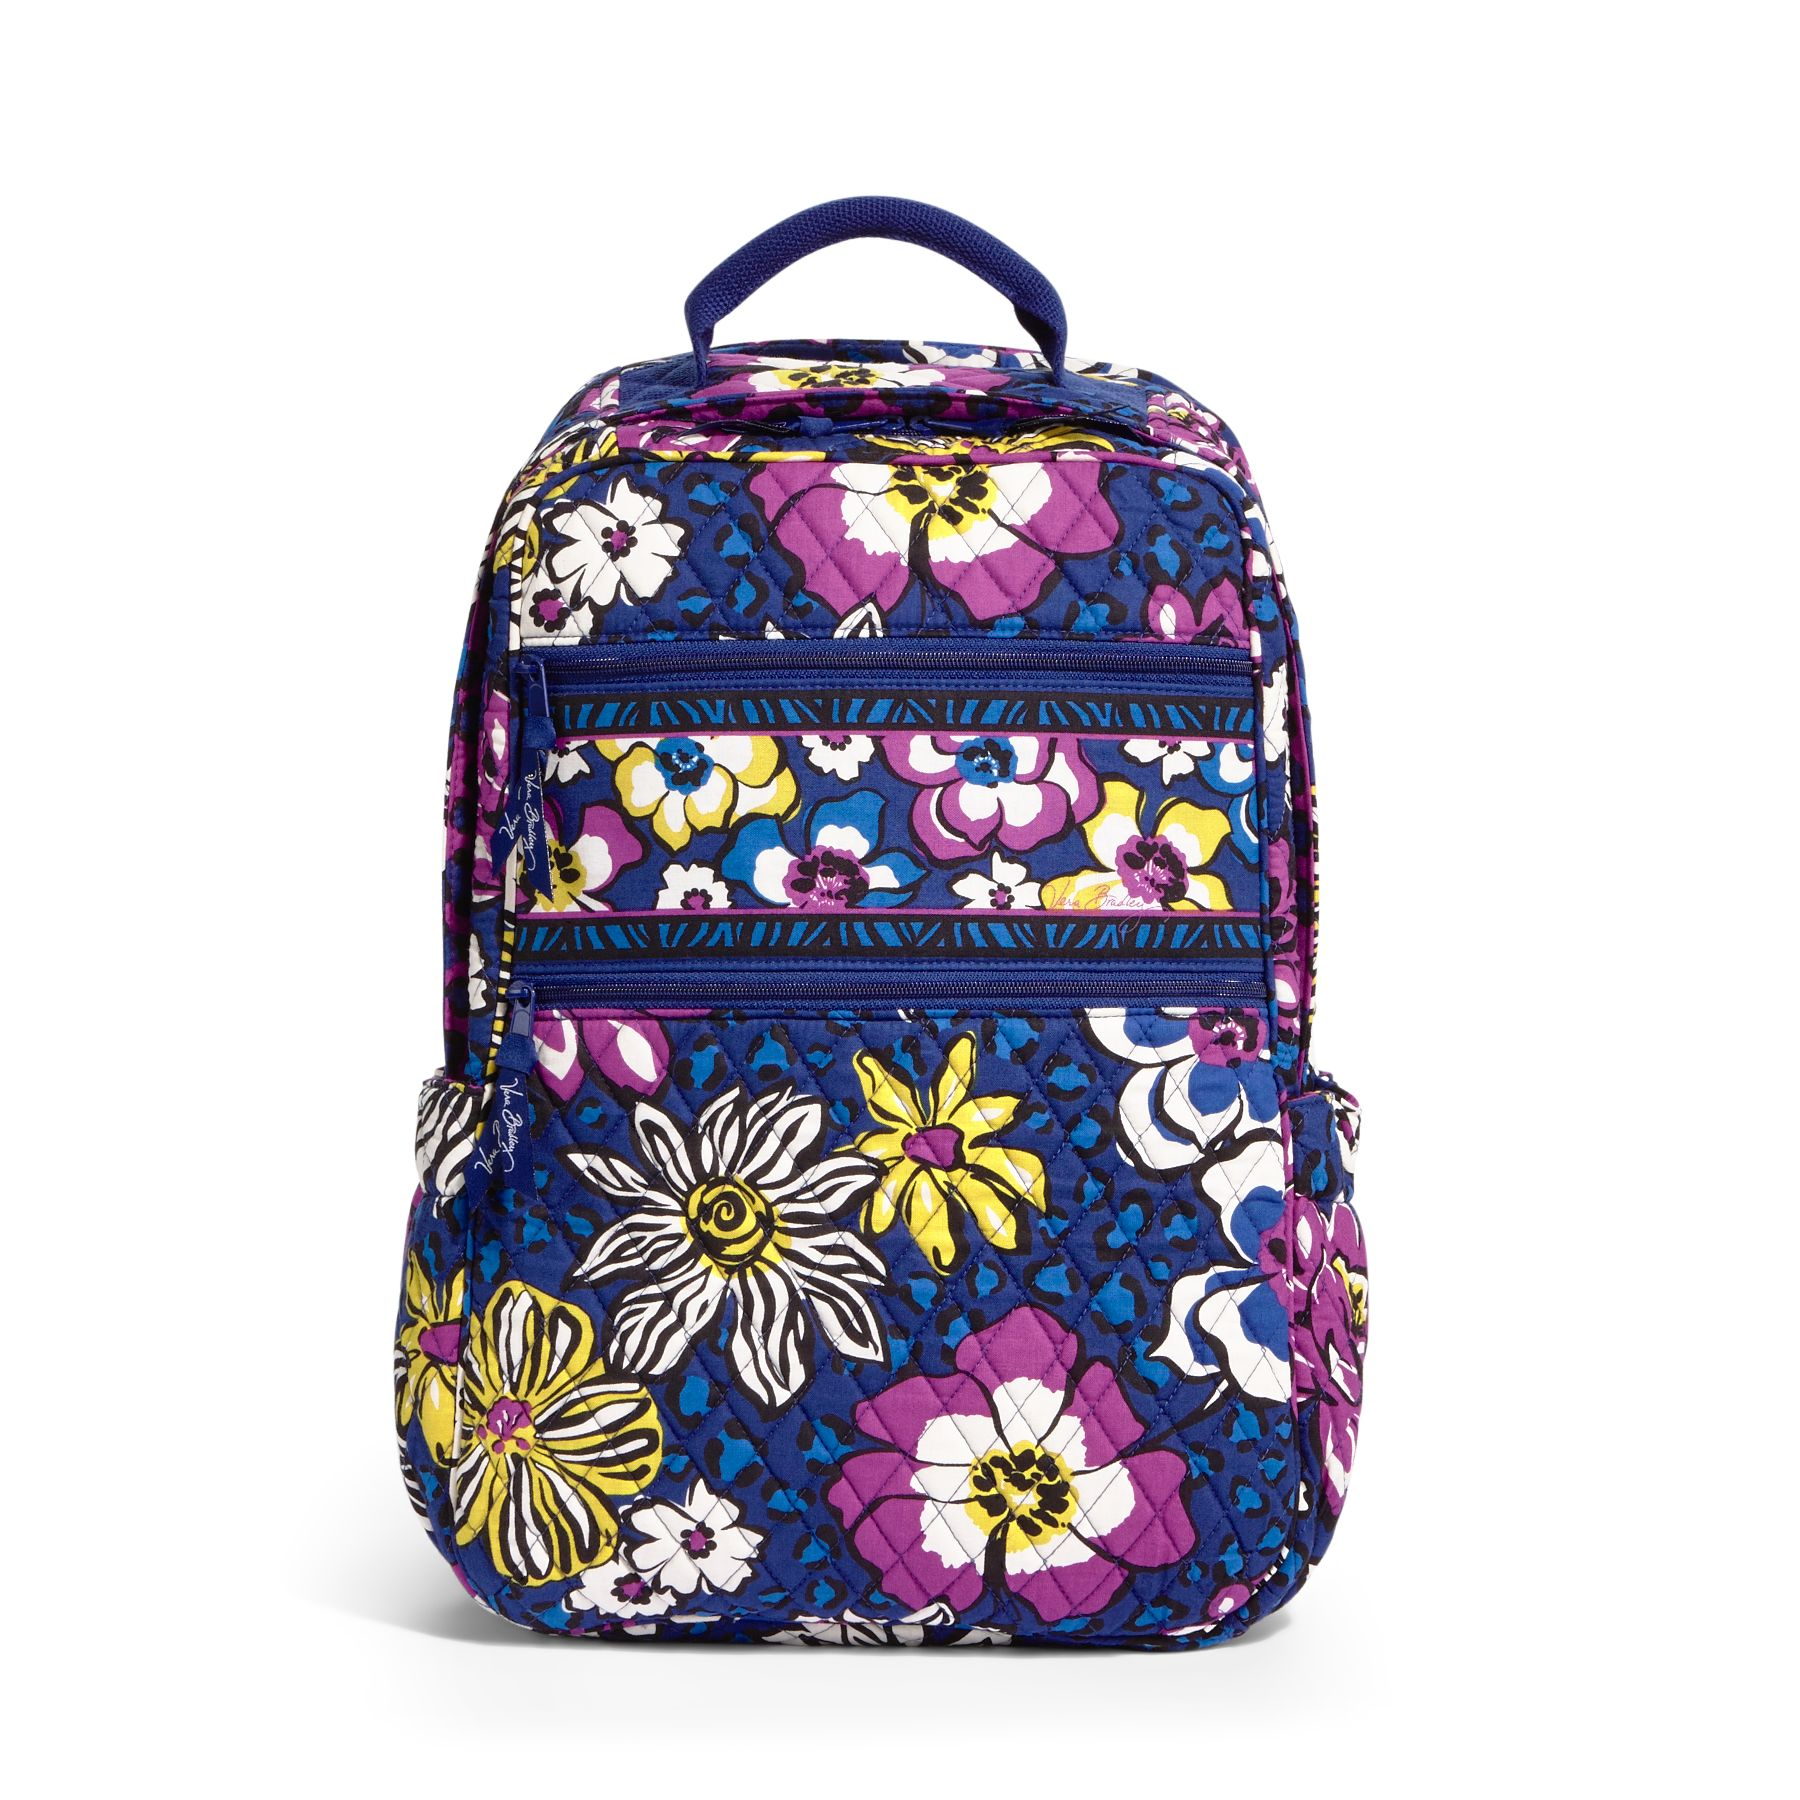 Vera Bradley Tech Backpack in African Violet